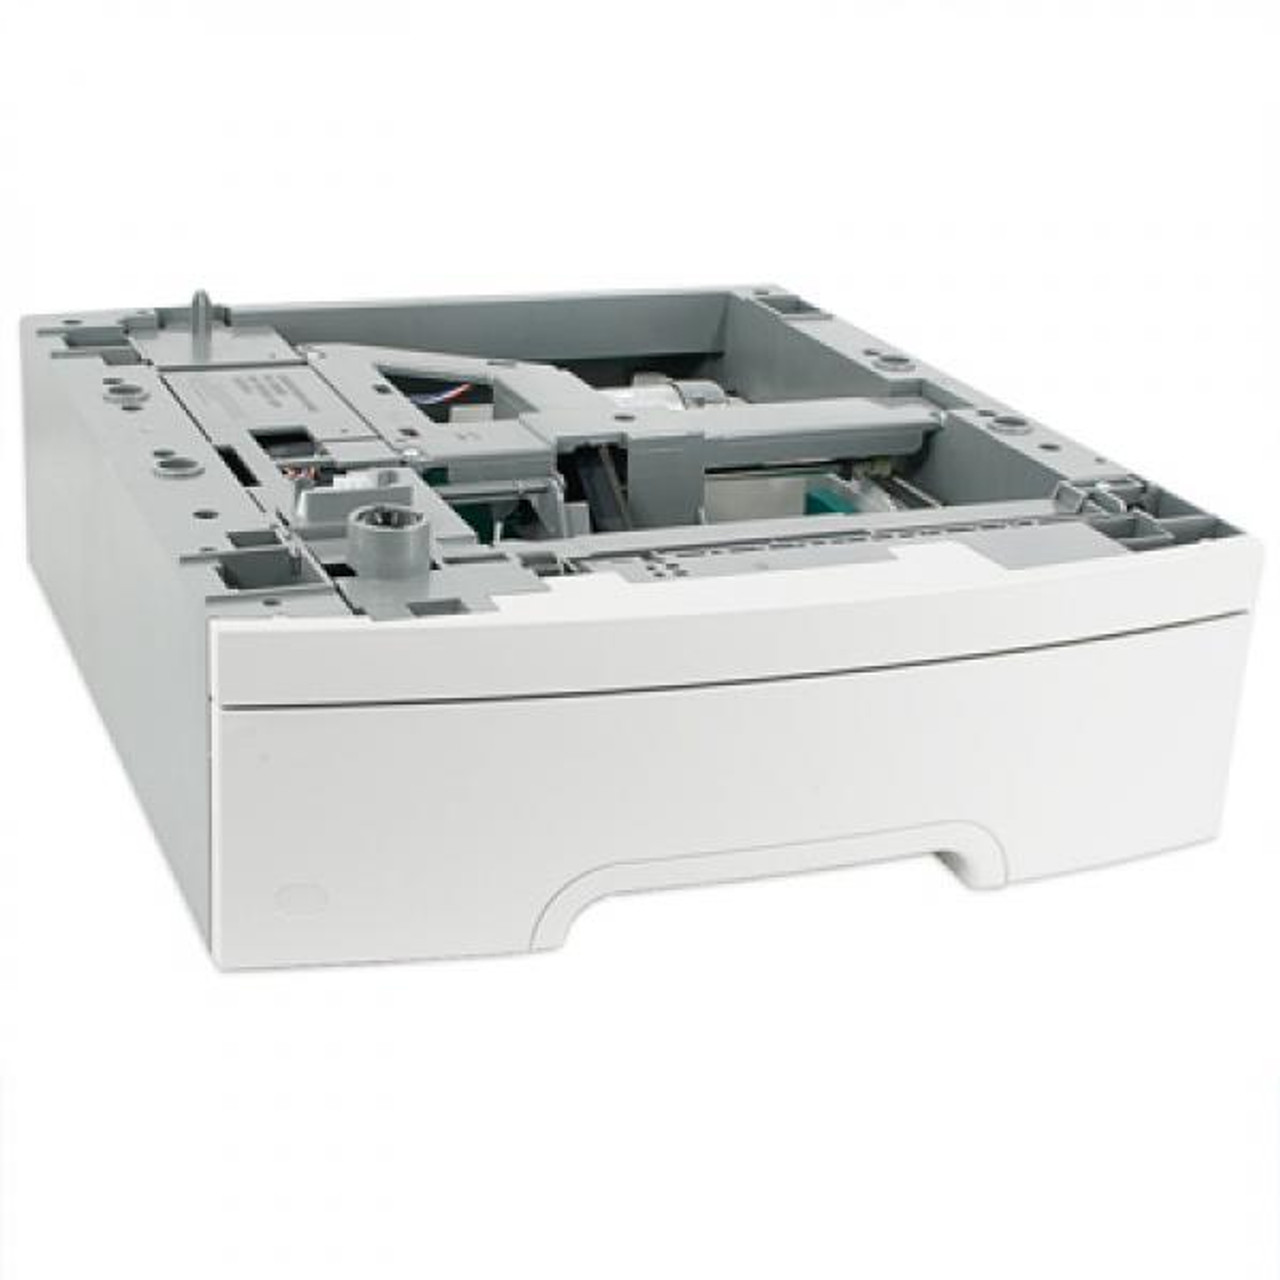 500 Sheet Media Feeder for Lexmark T640 T642 T644 series